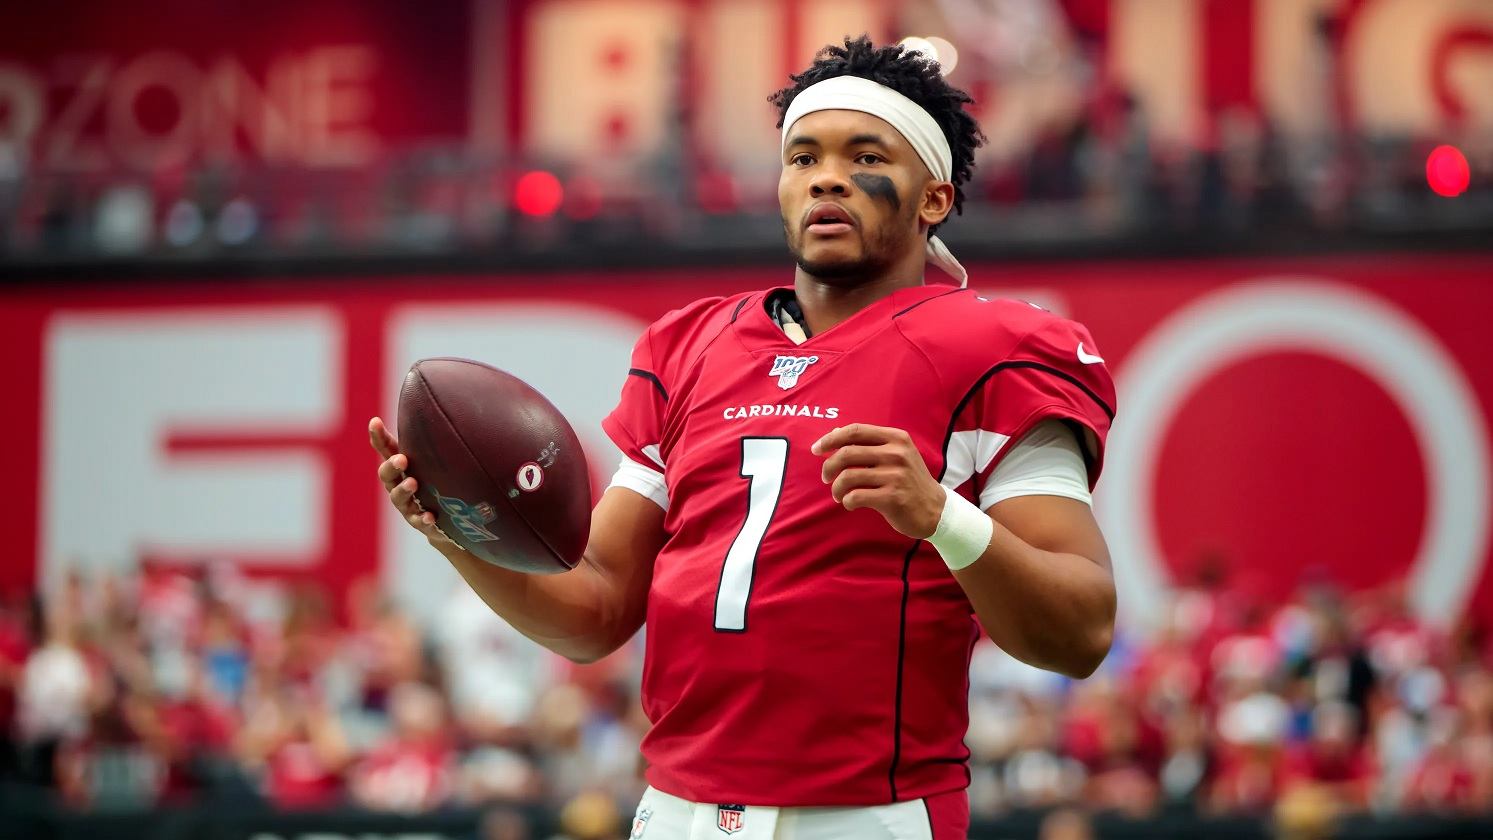 Kyler Murray, Strendus Daily Fantasy